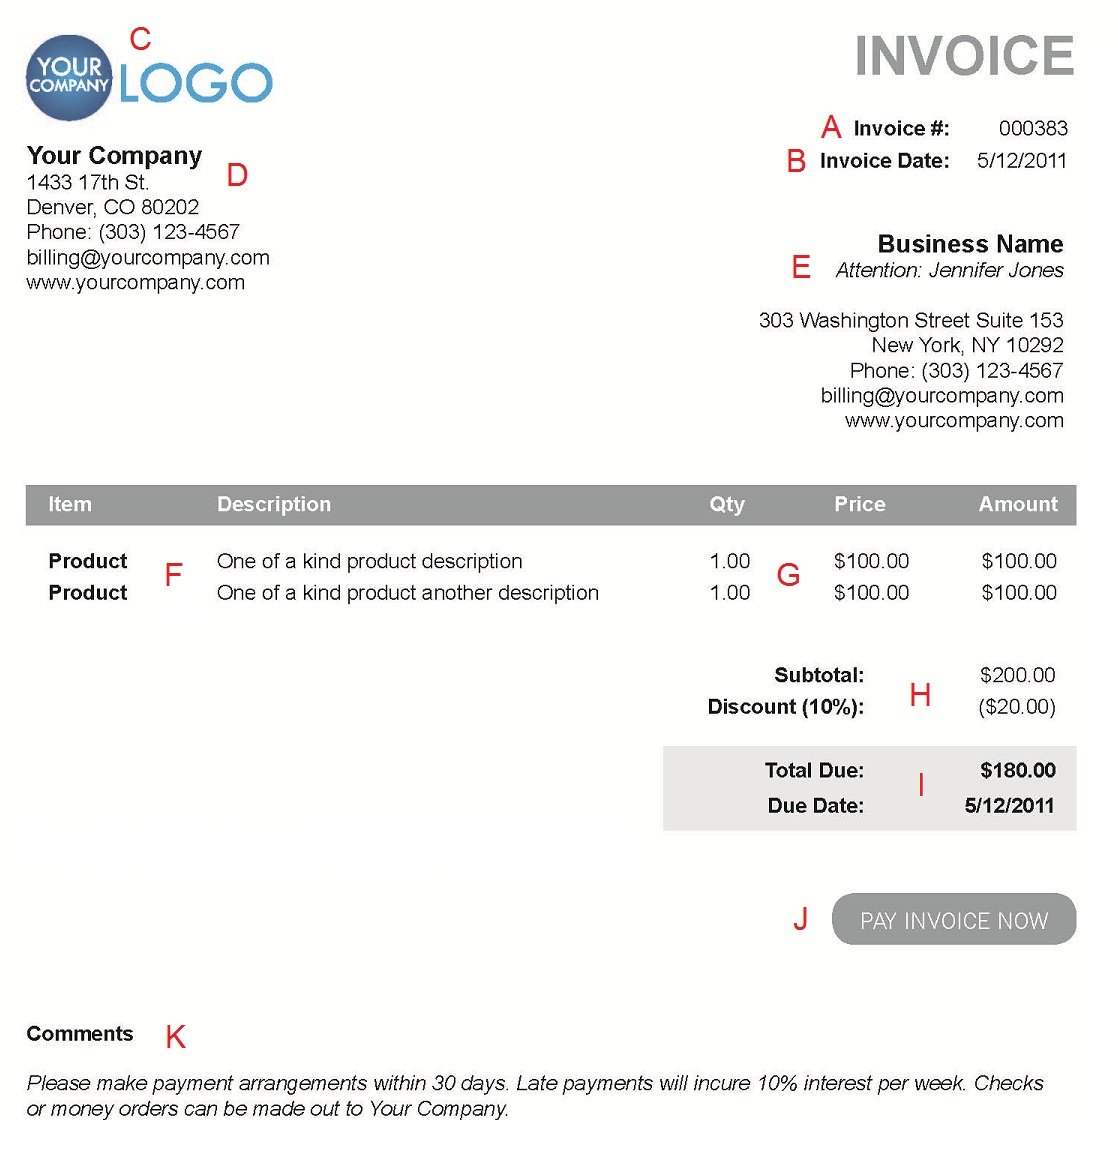 Floobydustus  Pleasant The  Different Sections Of An Electronic Payment Invoice With Luxury A  With Cute Meaning Proforma Invoice Also Invoice Template Free Uk In Addition Invoice Reconciliation Process And Gnucash Invoices As Well As Quotes And Invoices Additionally Statement Of Invoice From Paysimplecom With Floobydustus  Luxury The  Different Sections Of An Electronic Payment Invoice With Cute A  And Pleasant Meaning Proforma Invoice Also Invoice Template Free Uk In Addition Invoice Reconciliation Process From Paysimplecom